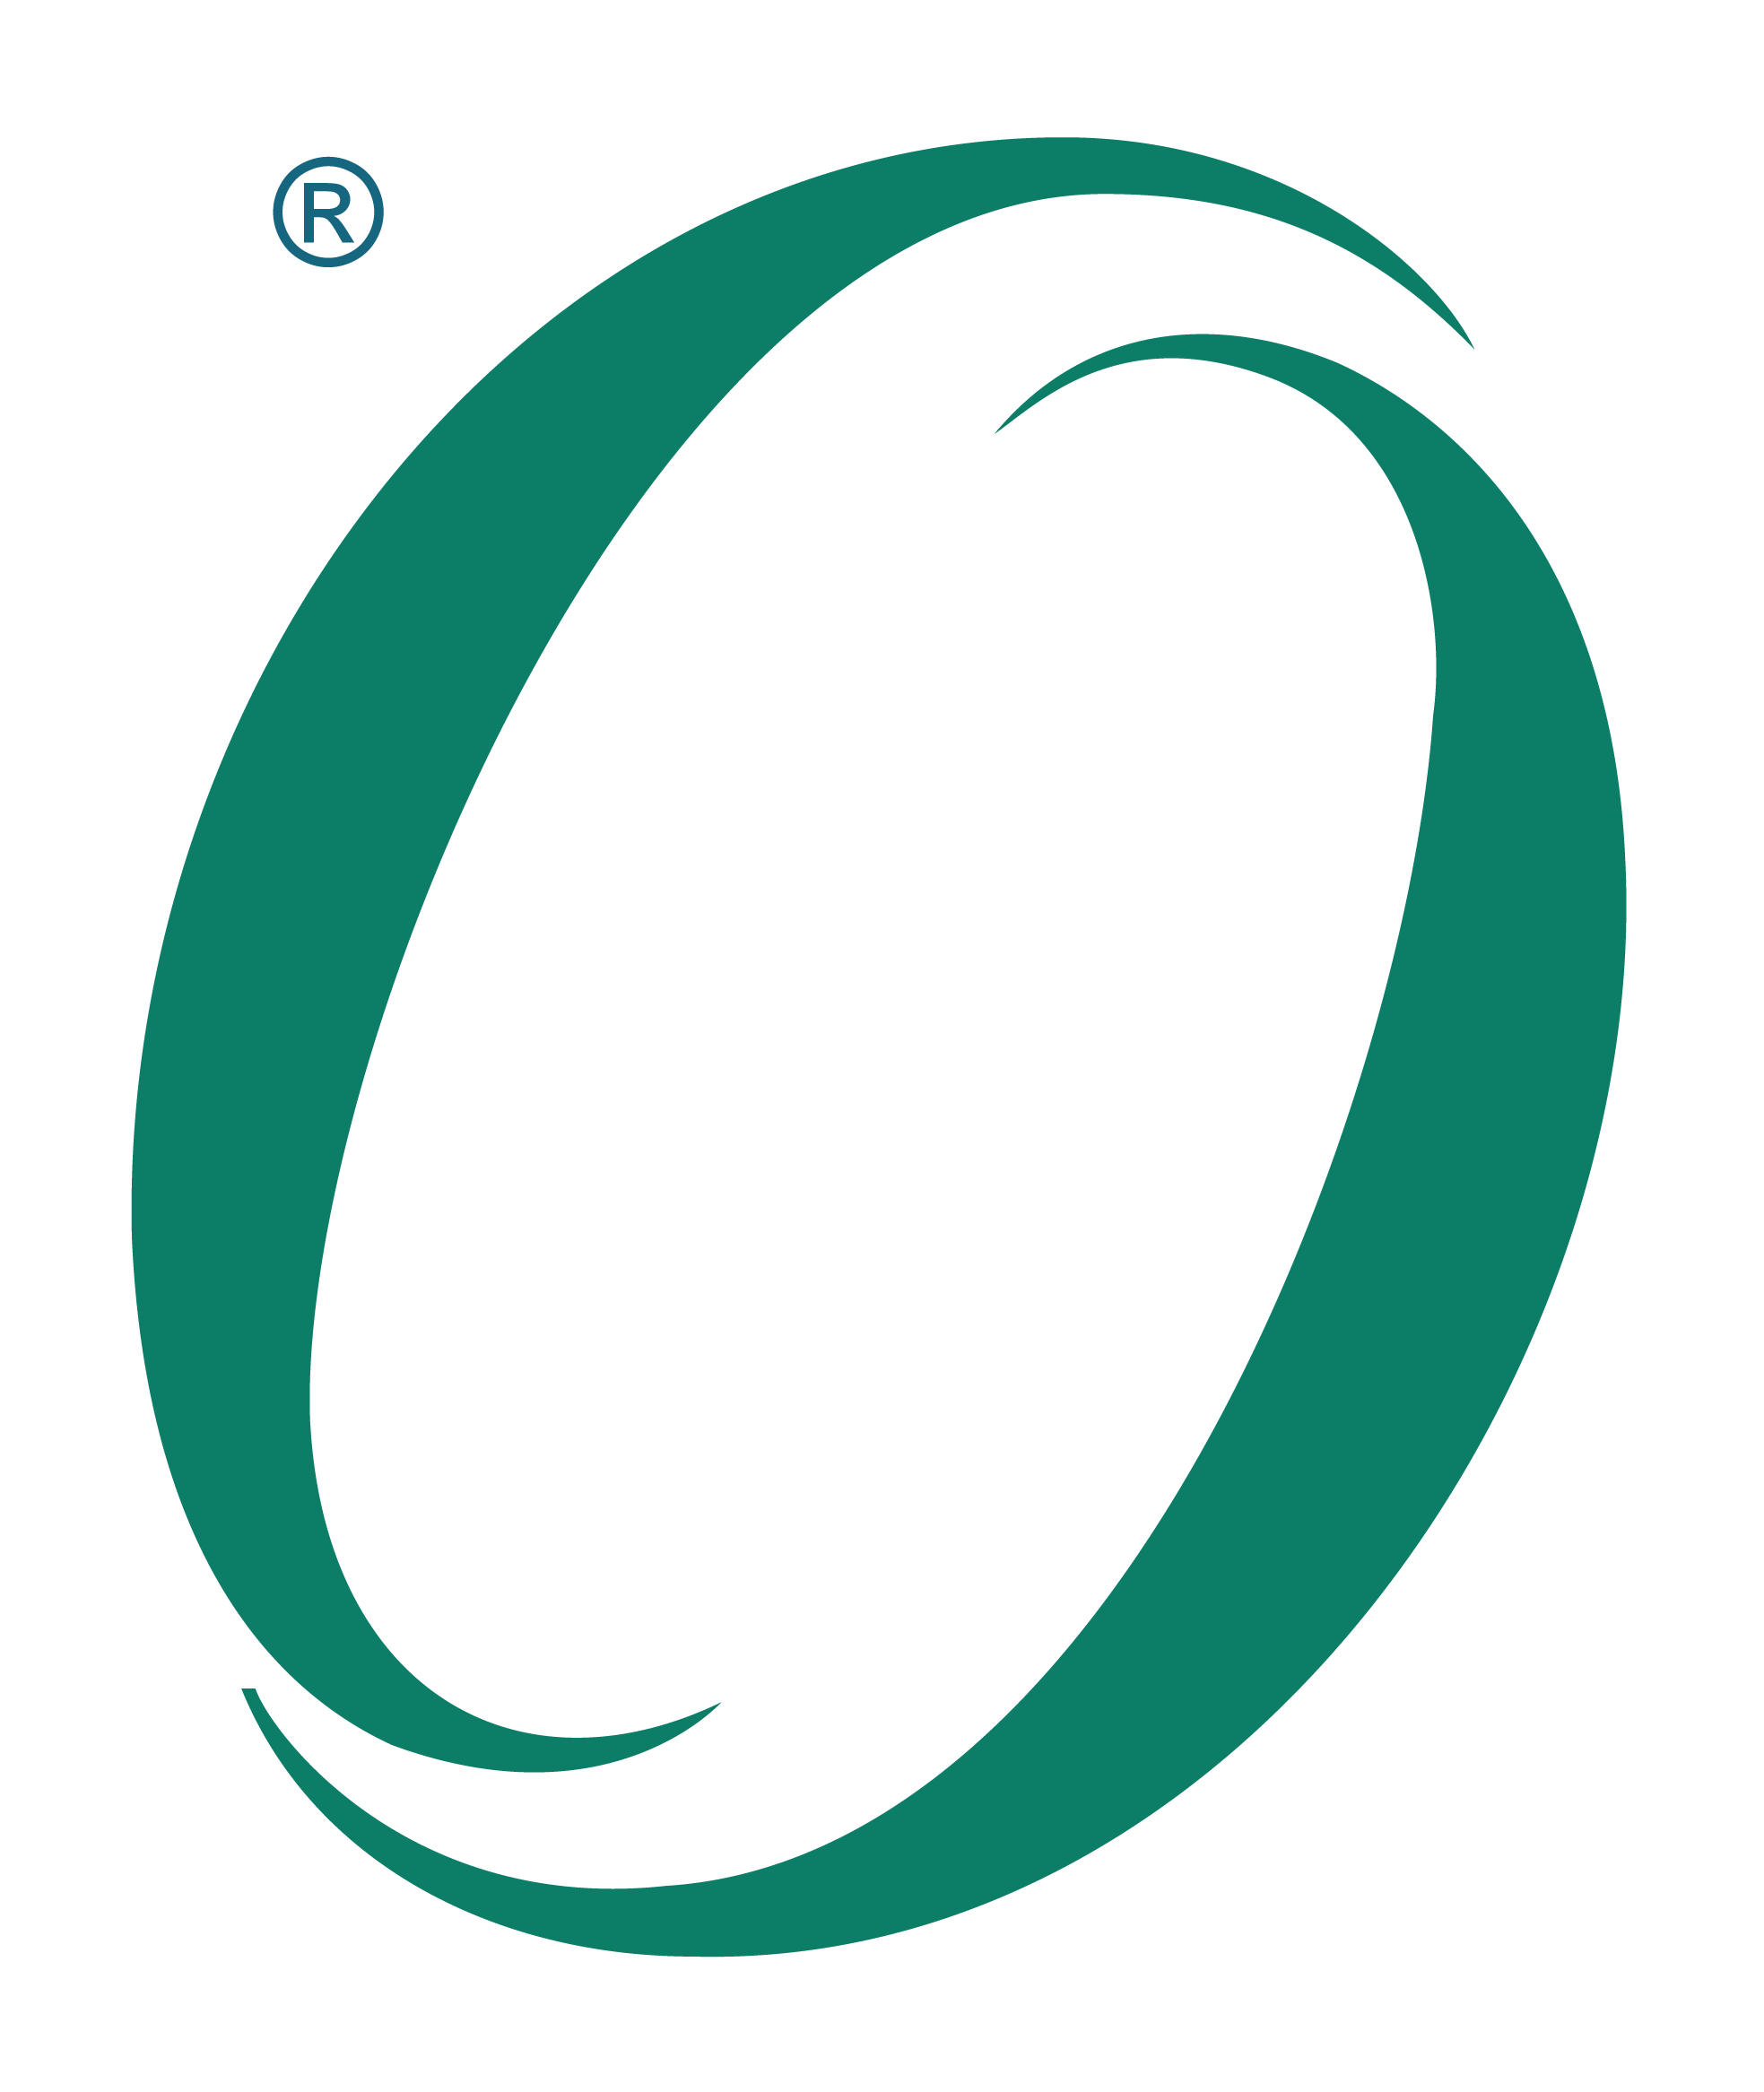 Application Response Measurement (ARM) Issue 3.0 (Java Binding)